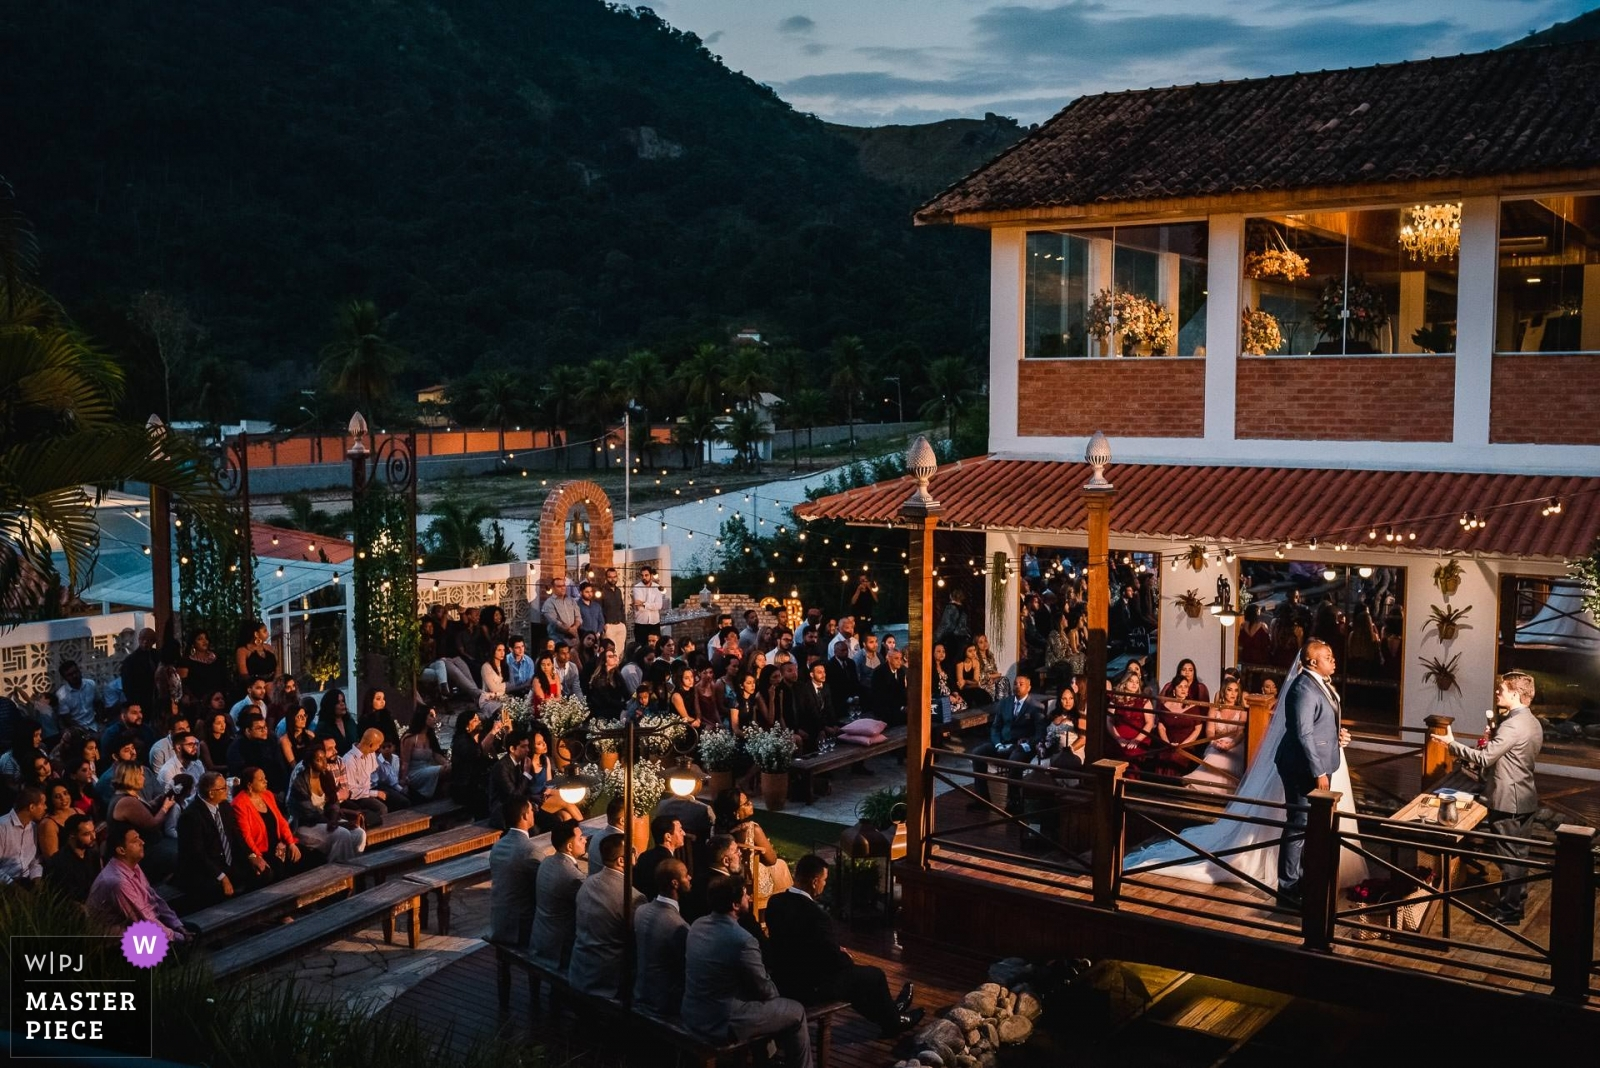 when all the guests are in the same photo. - Rio de Janeiro, Brazil Wedding Photography -  | Vila Monsaraz - Rio de Janeiro - Brazil